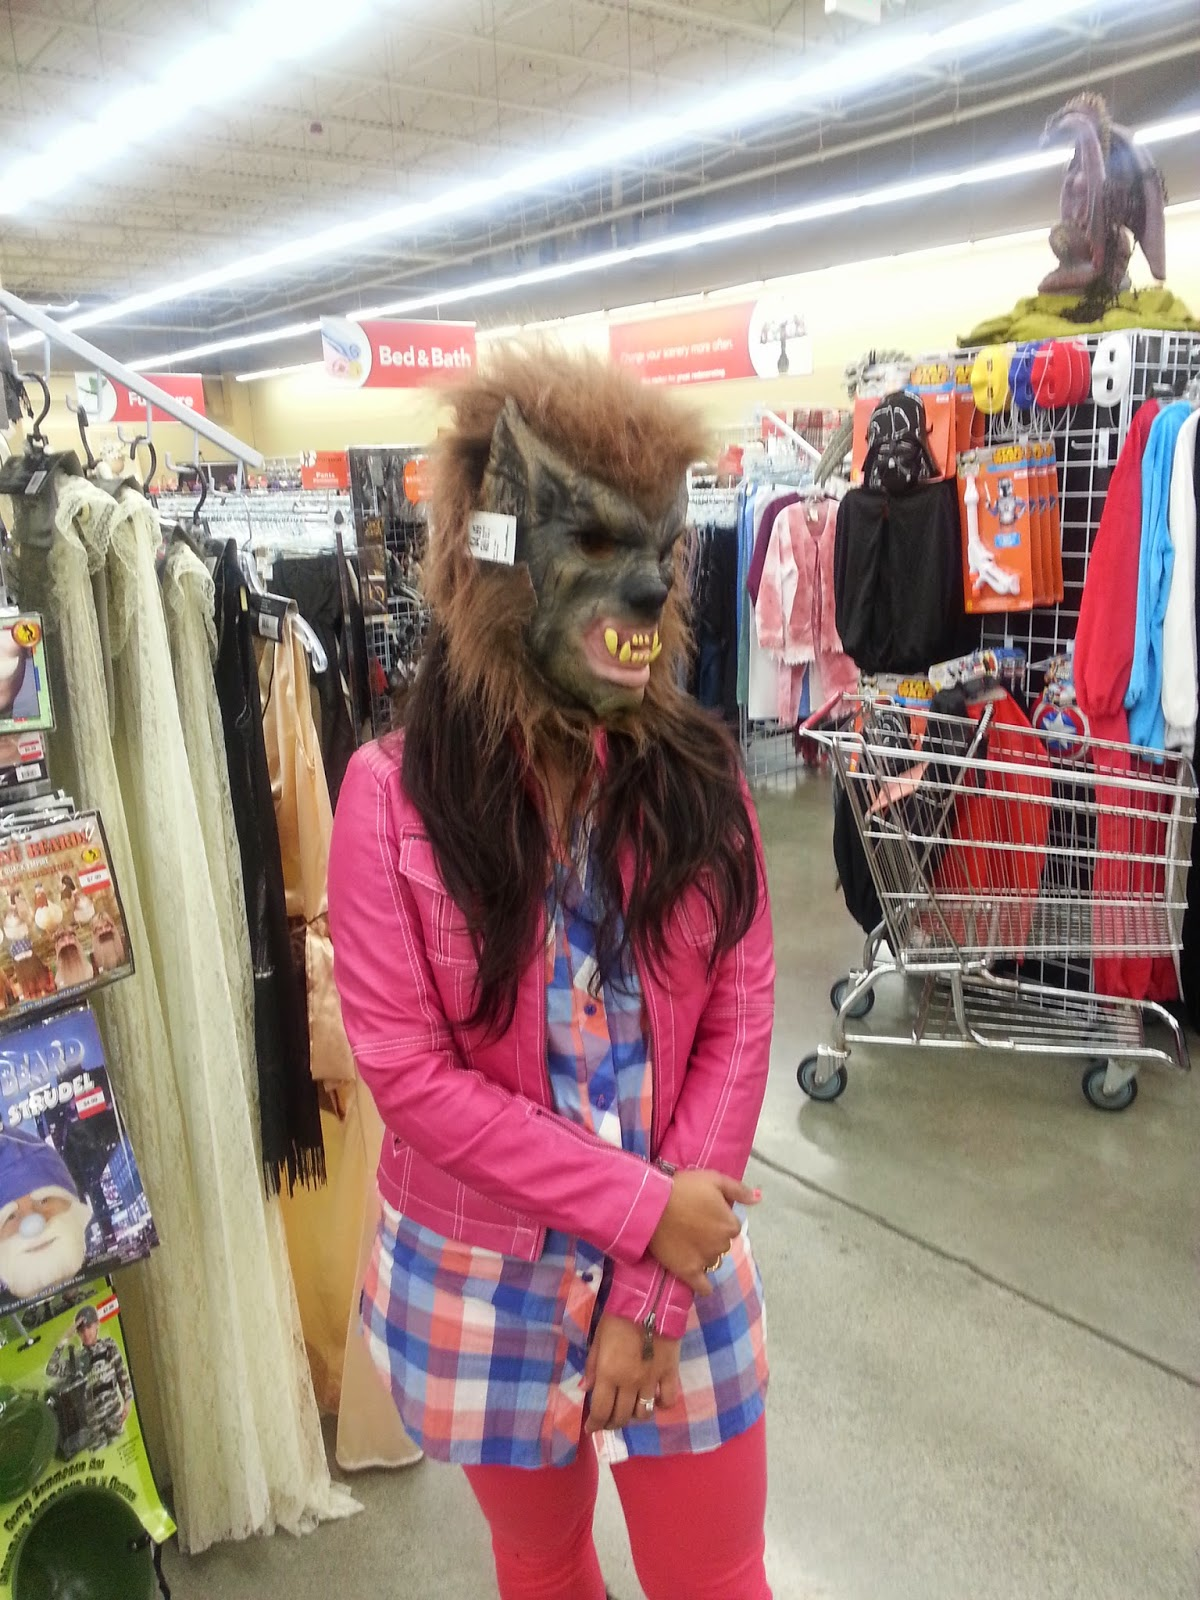 Seattle Halloween party, Halloween mask ideas, Seattle night life, Halloween shopping, Ananya's shopping pics , a guy wearing a mask, indian girl wearing a scary mask